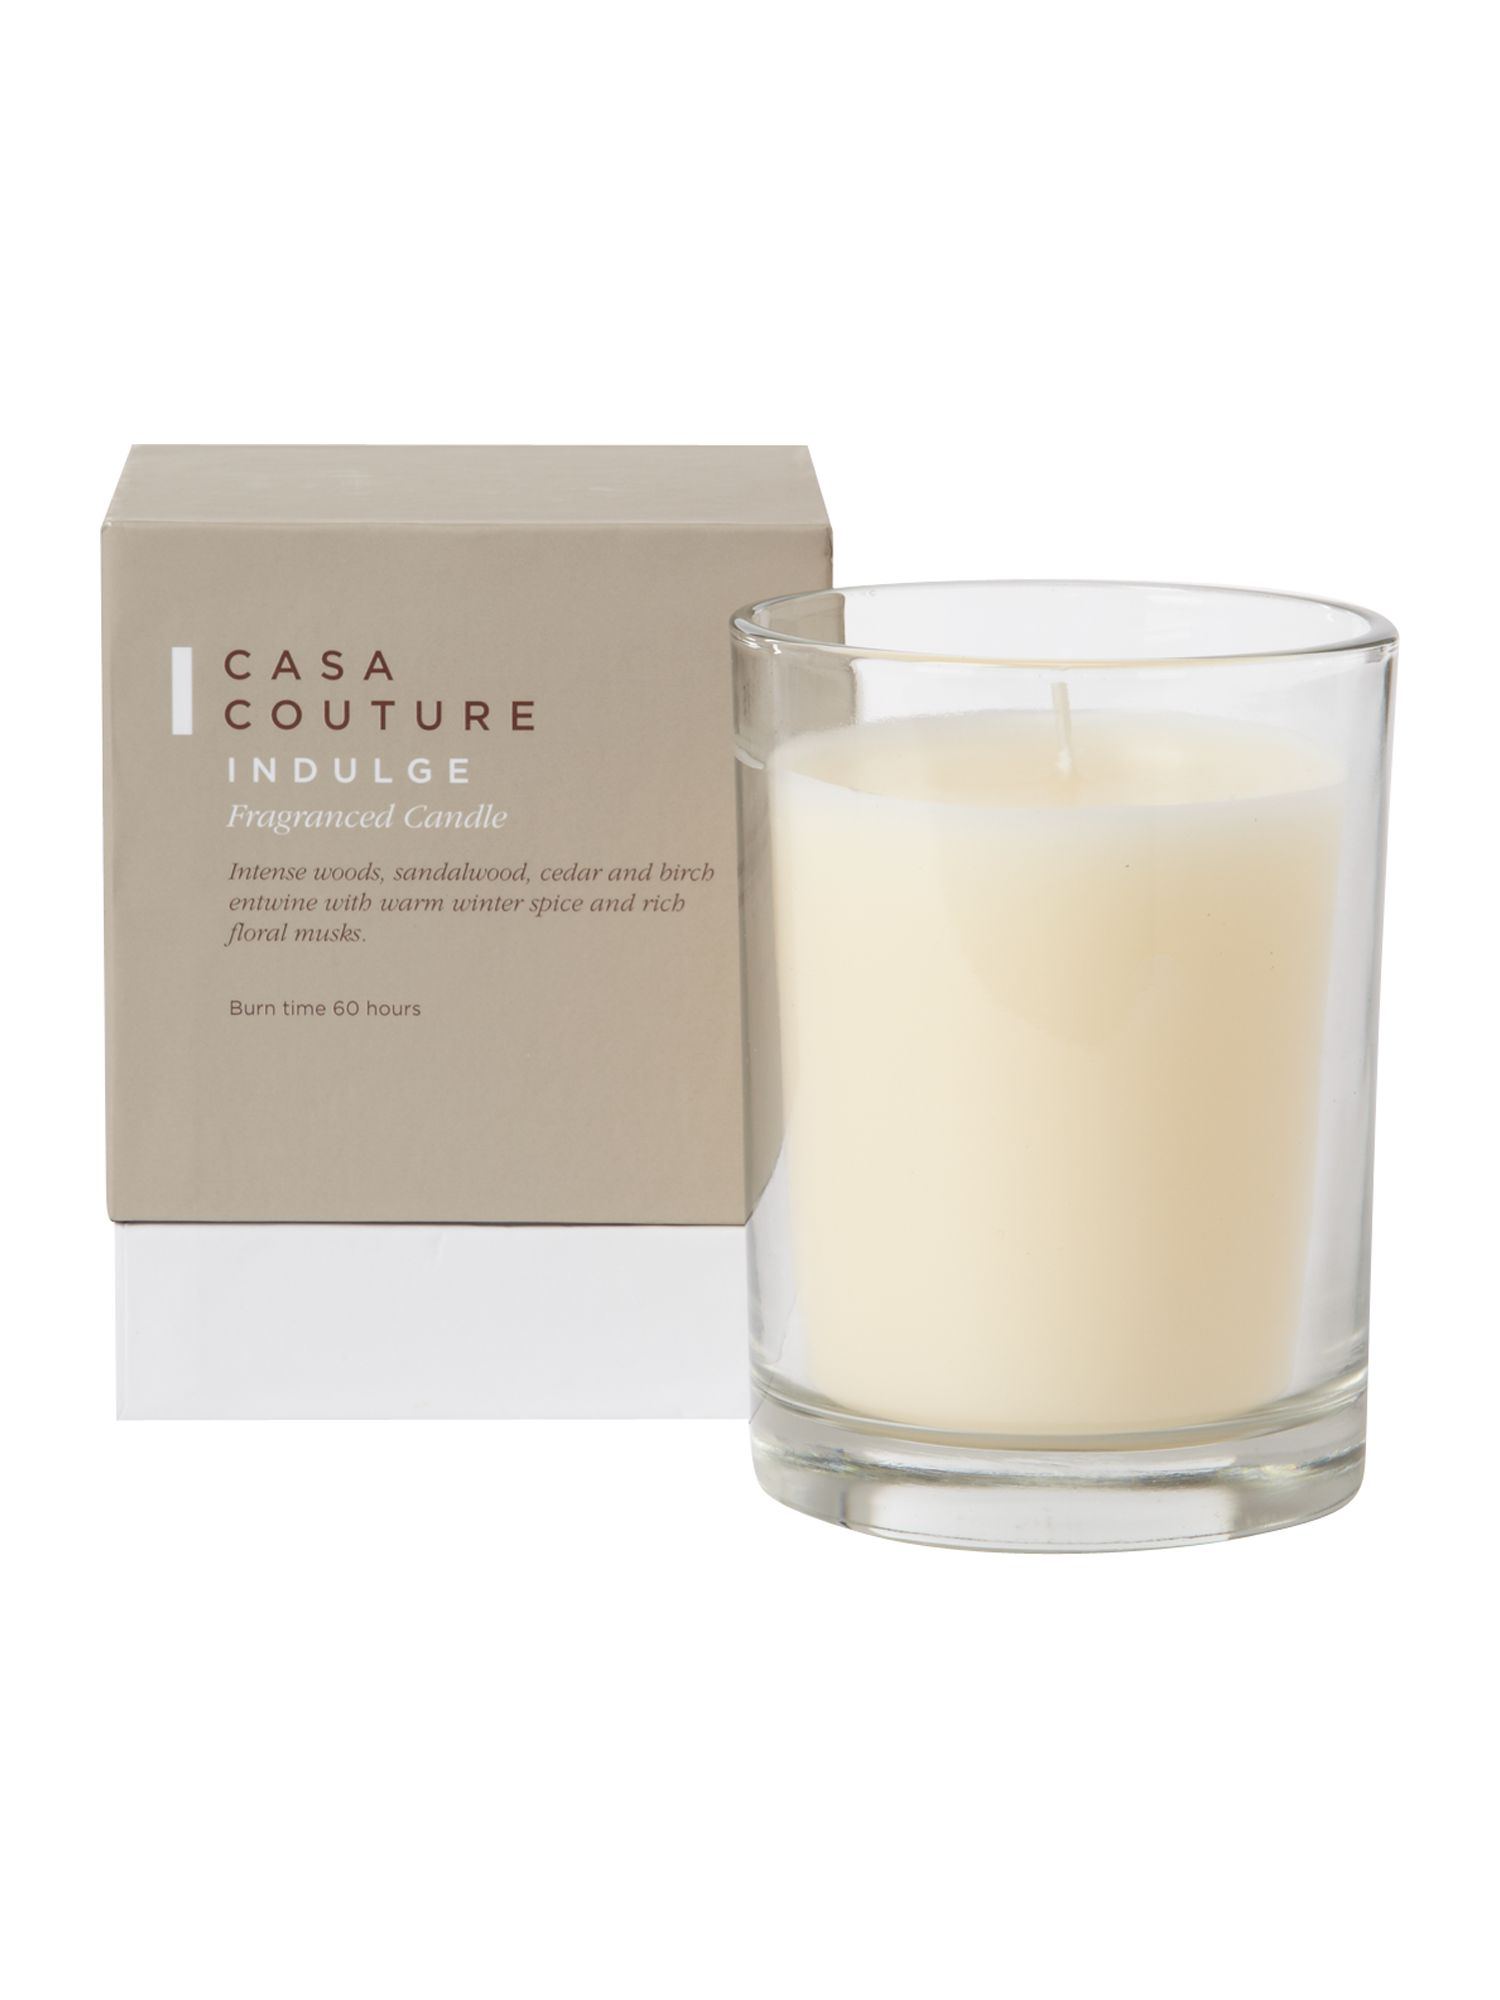 Indulge candle